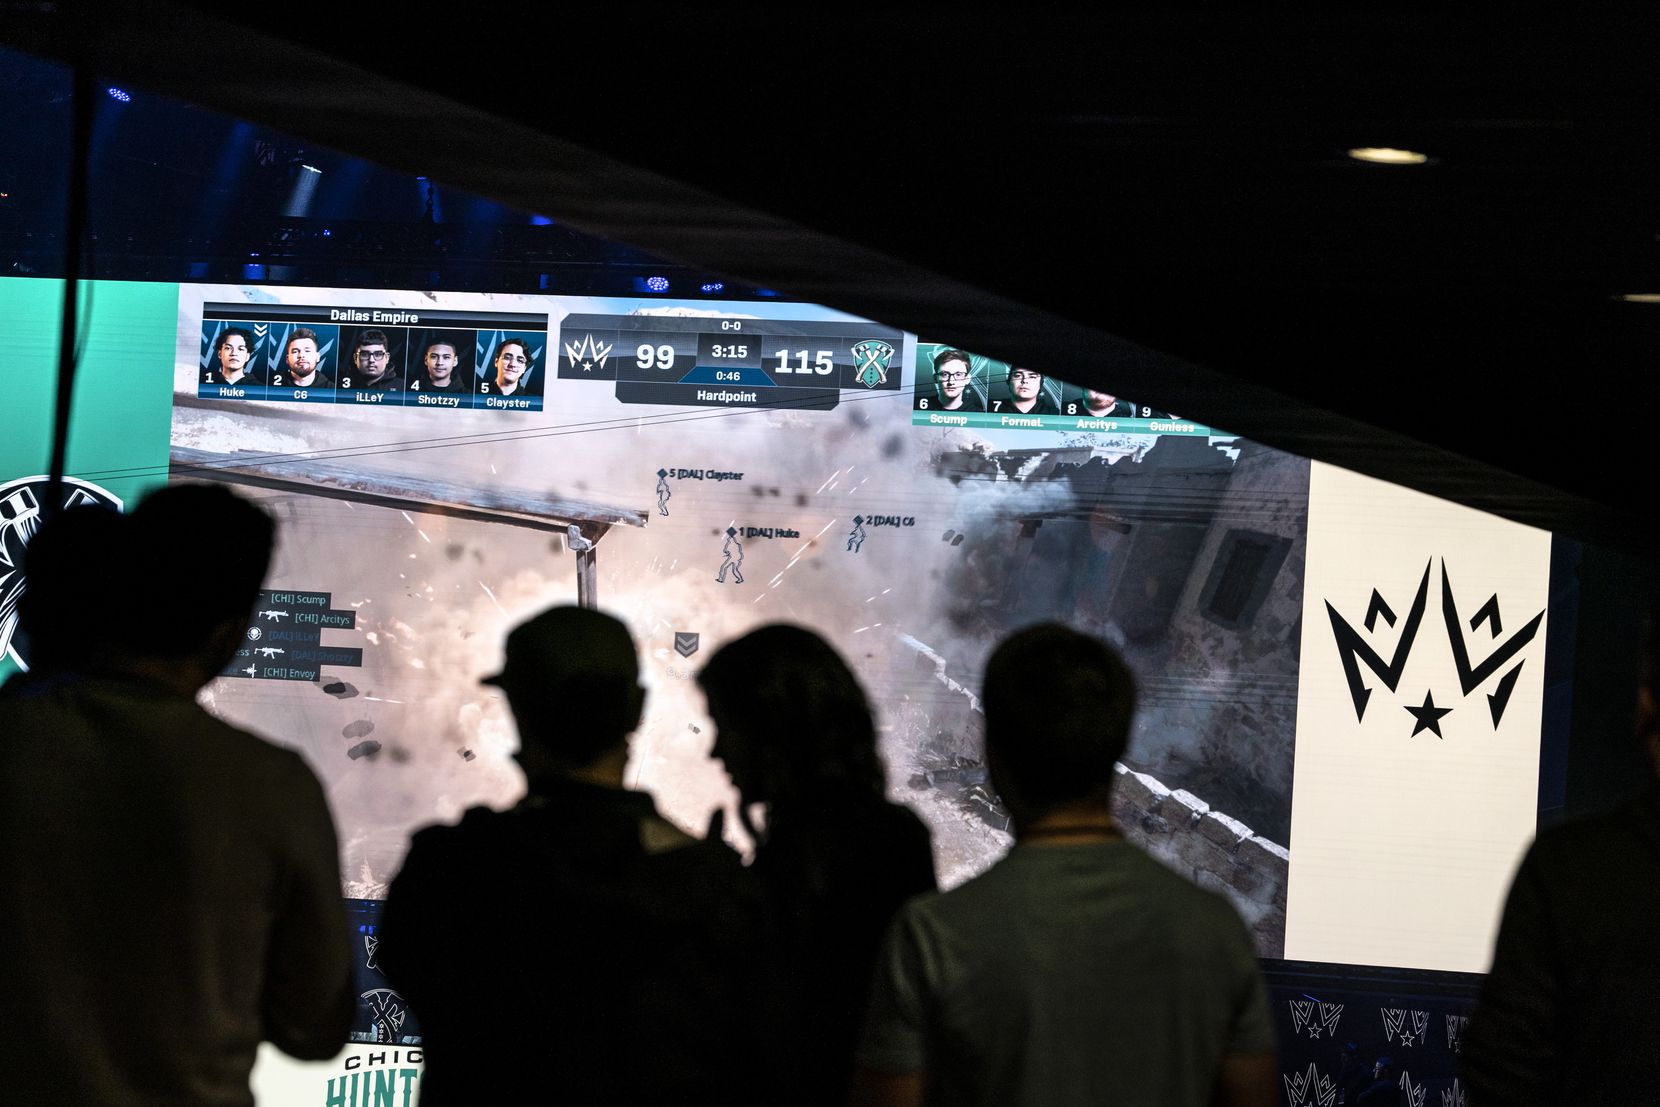 Fans watch Dallas Empire compete against Chicago Huntsmen in the Call of Duty League Launch Weekend at the Armory in Minneapolis, Minn., January 24, 2020.